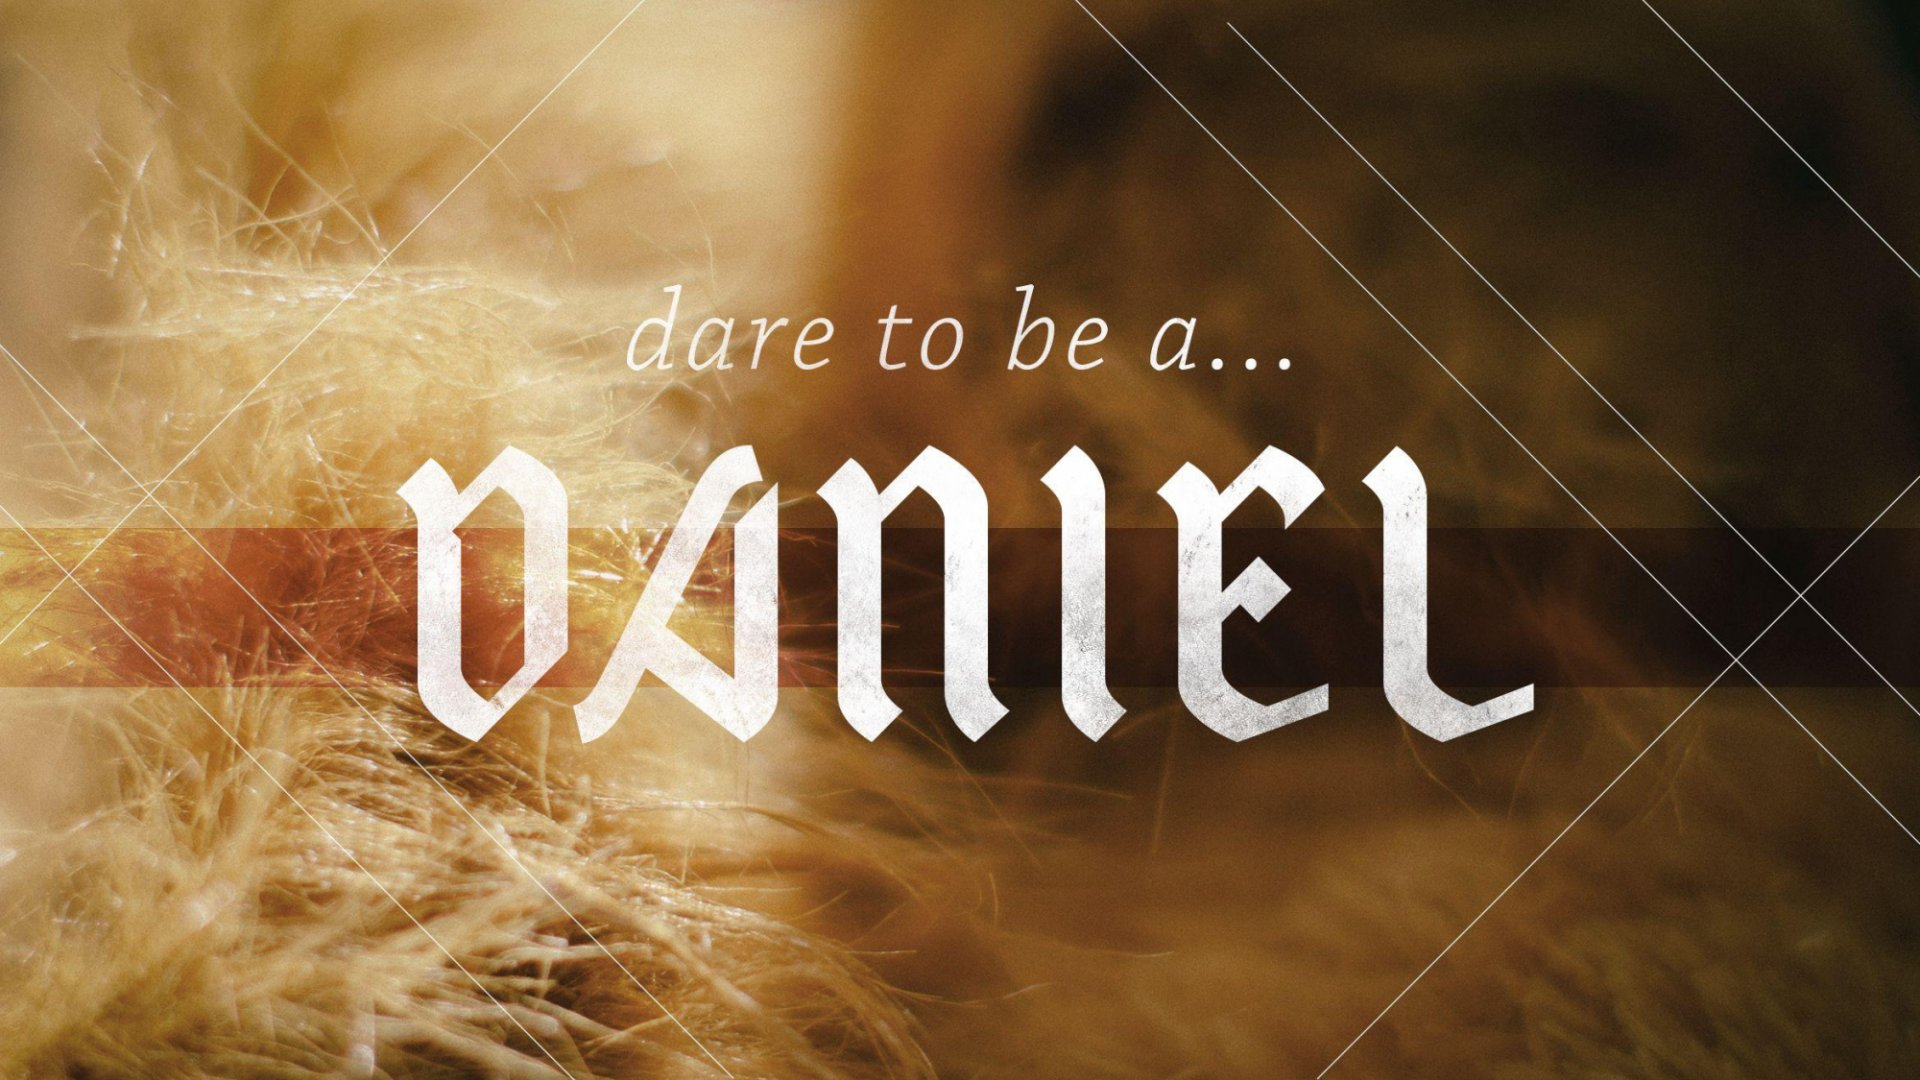 Teaching artwork for Dare to be a Daniel